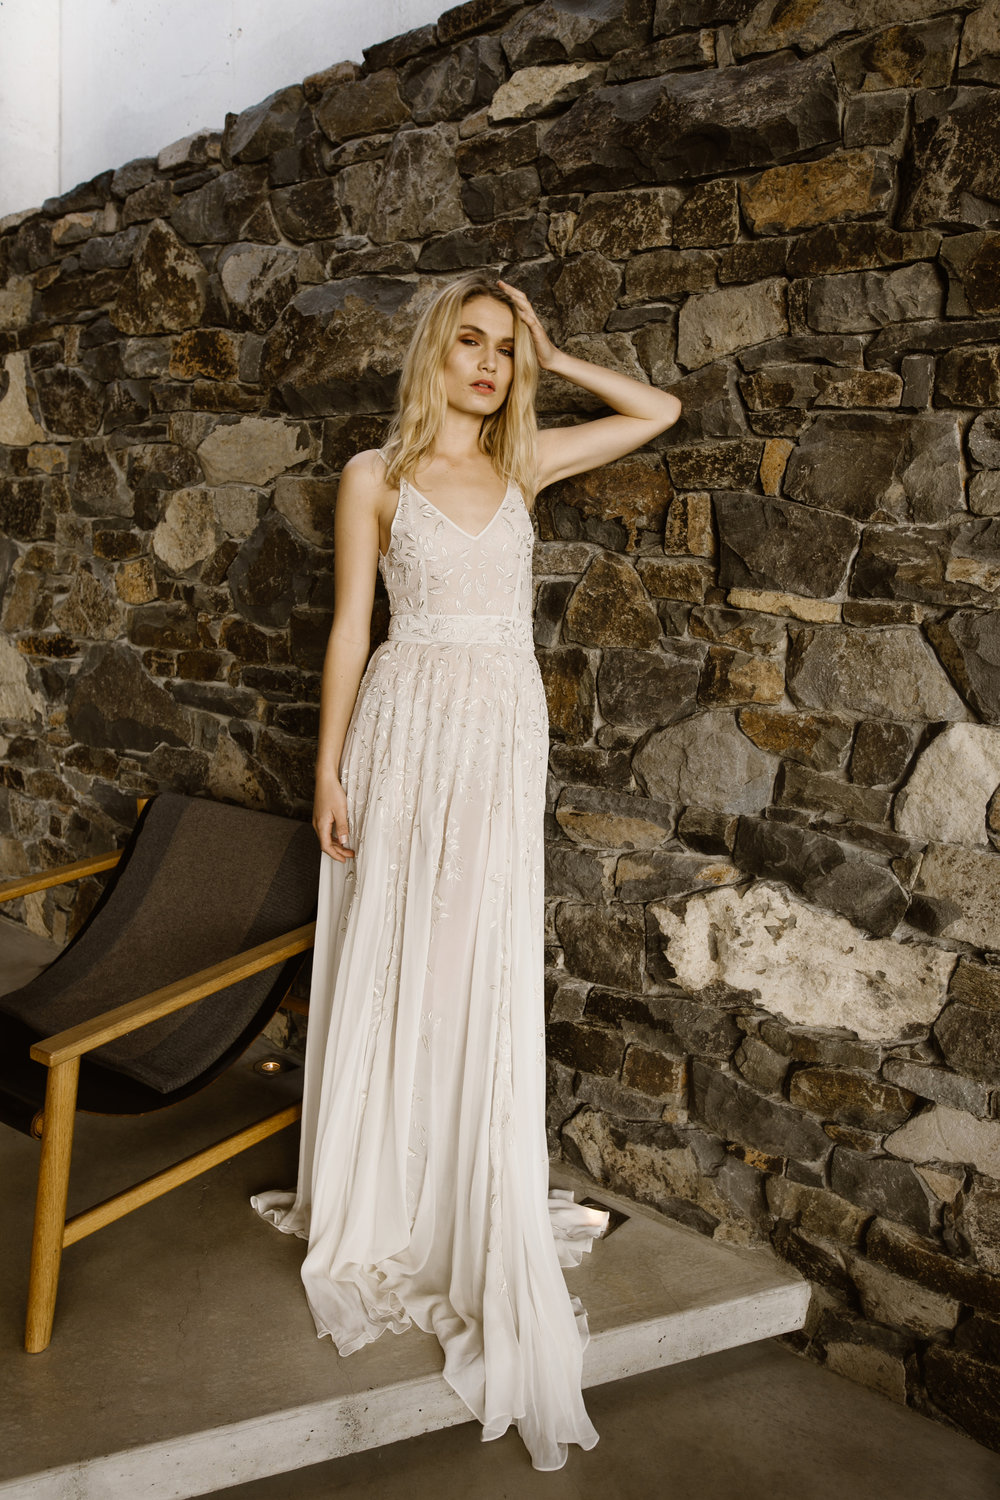 Piece 1 is a Romantic  simple wedding gown by L'eto Bridal